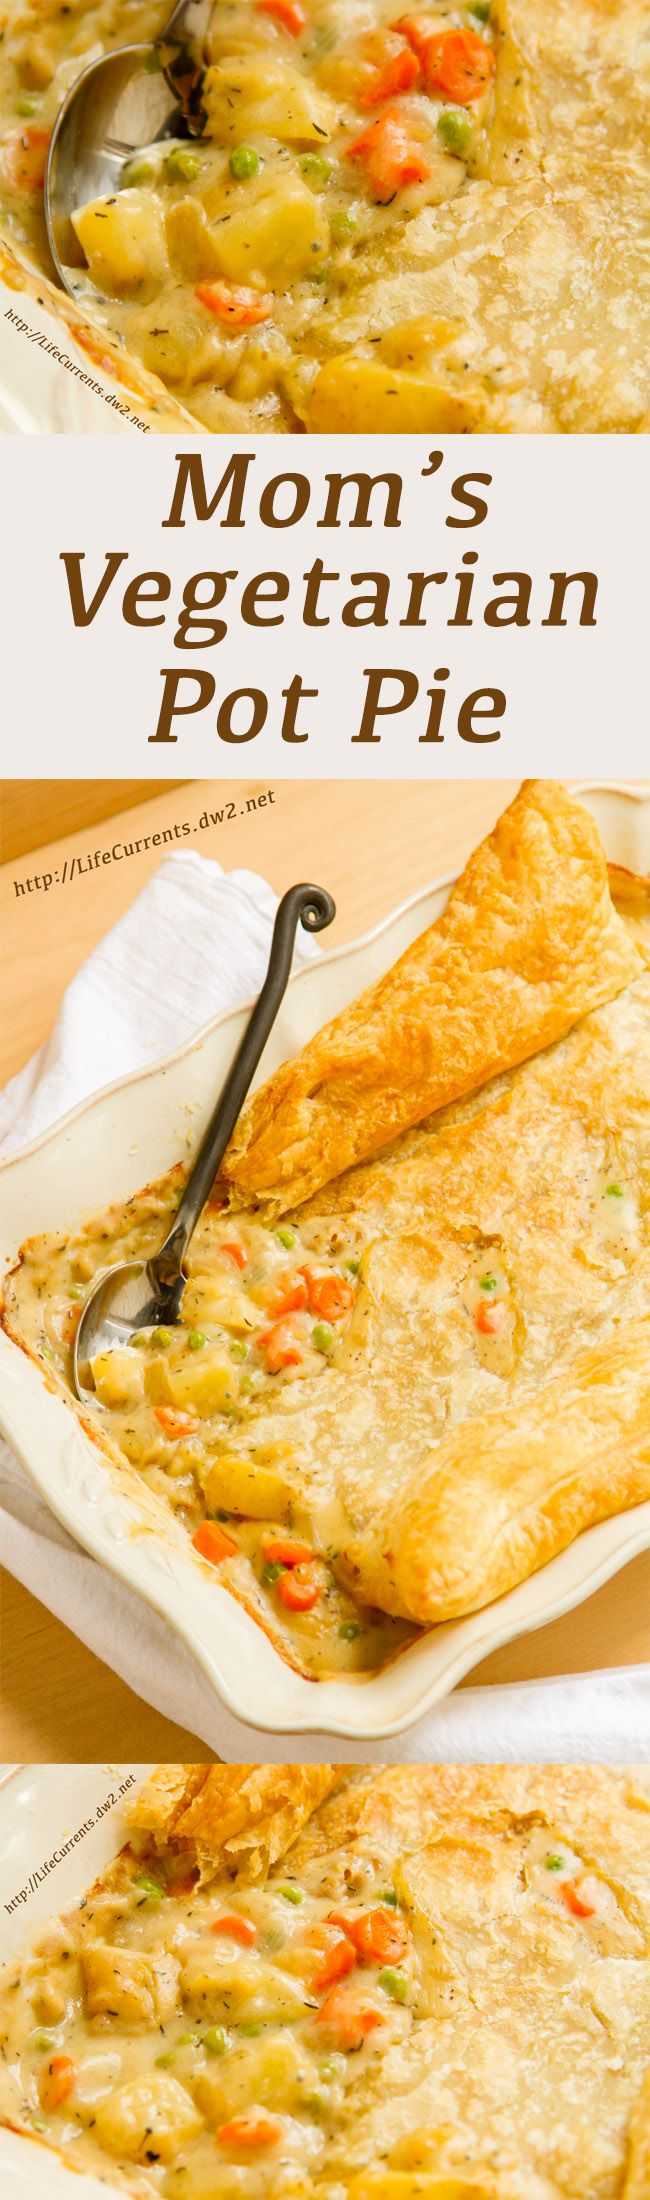 Mom's Vegetarian Pot Pie is yummy comfort food and great for Thanksgiving or Christmas dinner!